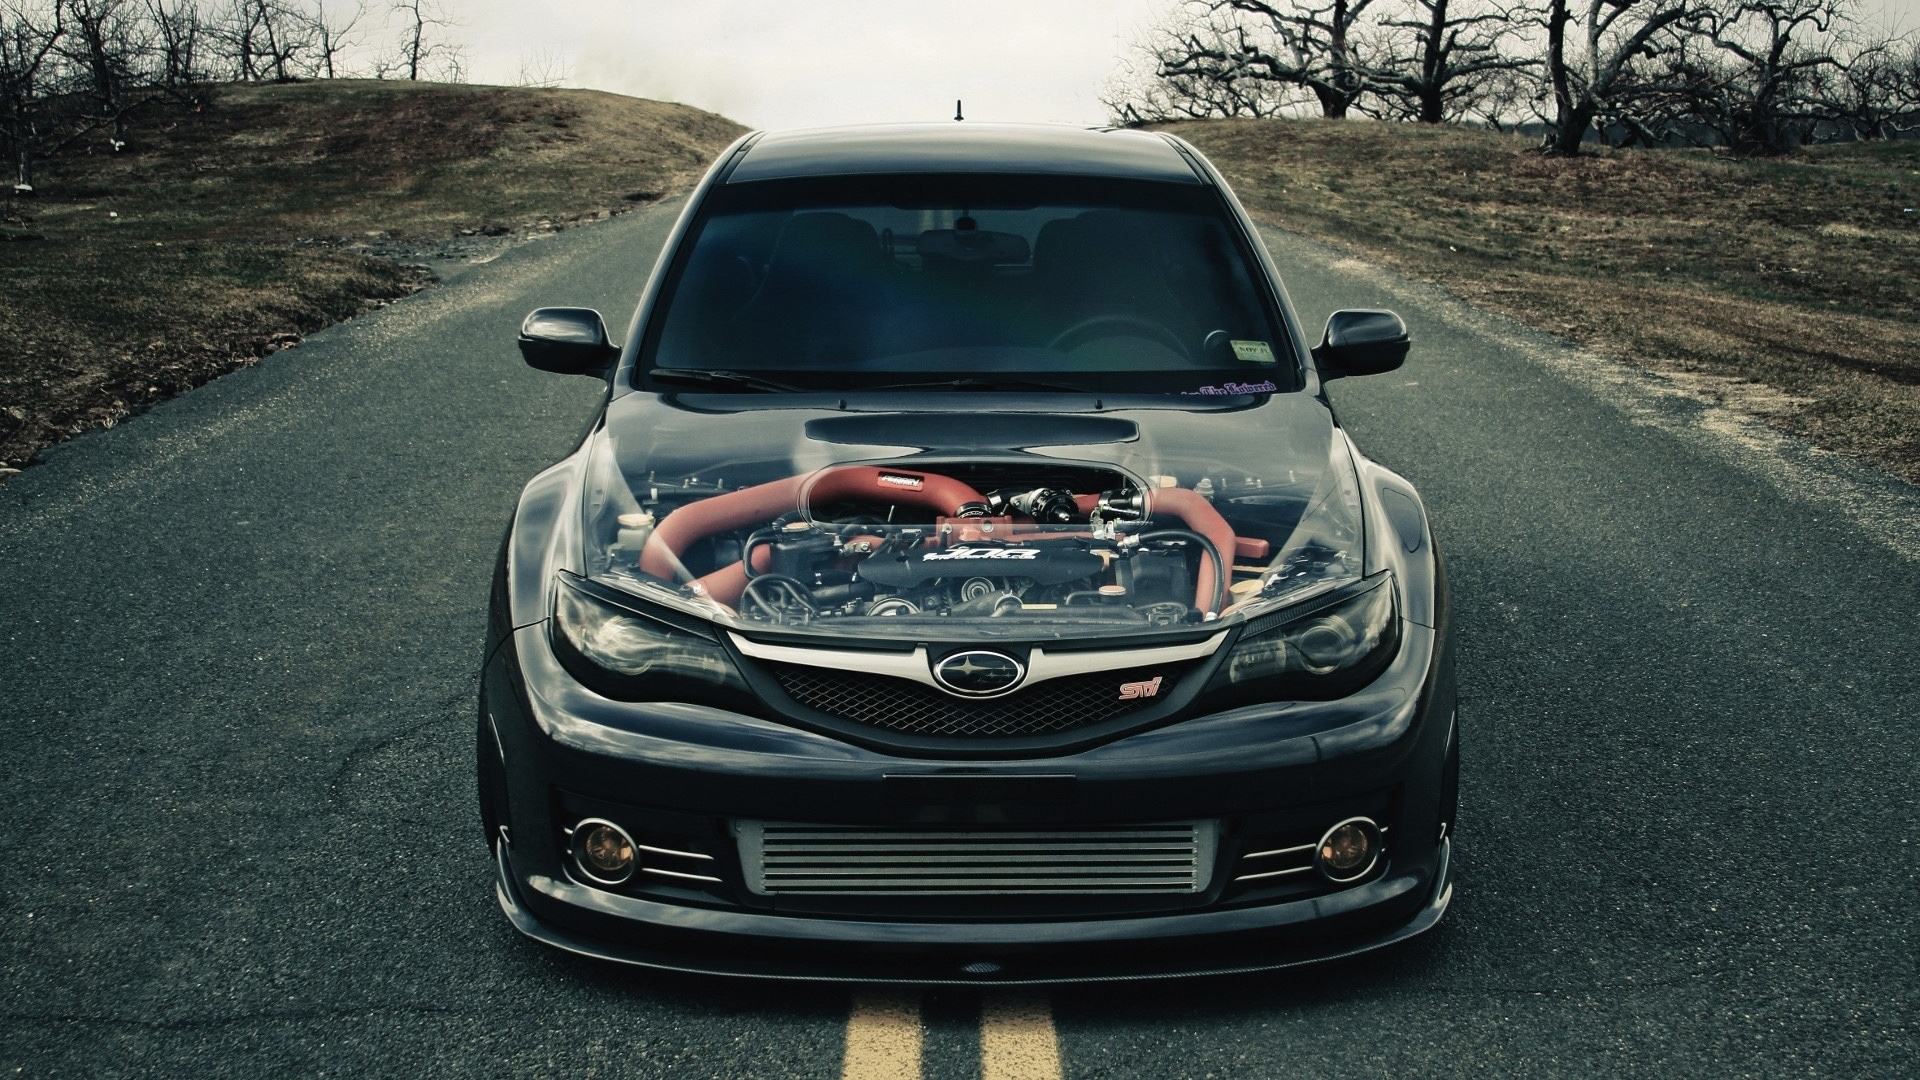 Subaru Impreza Wallpapers HD